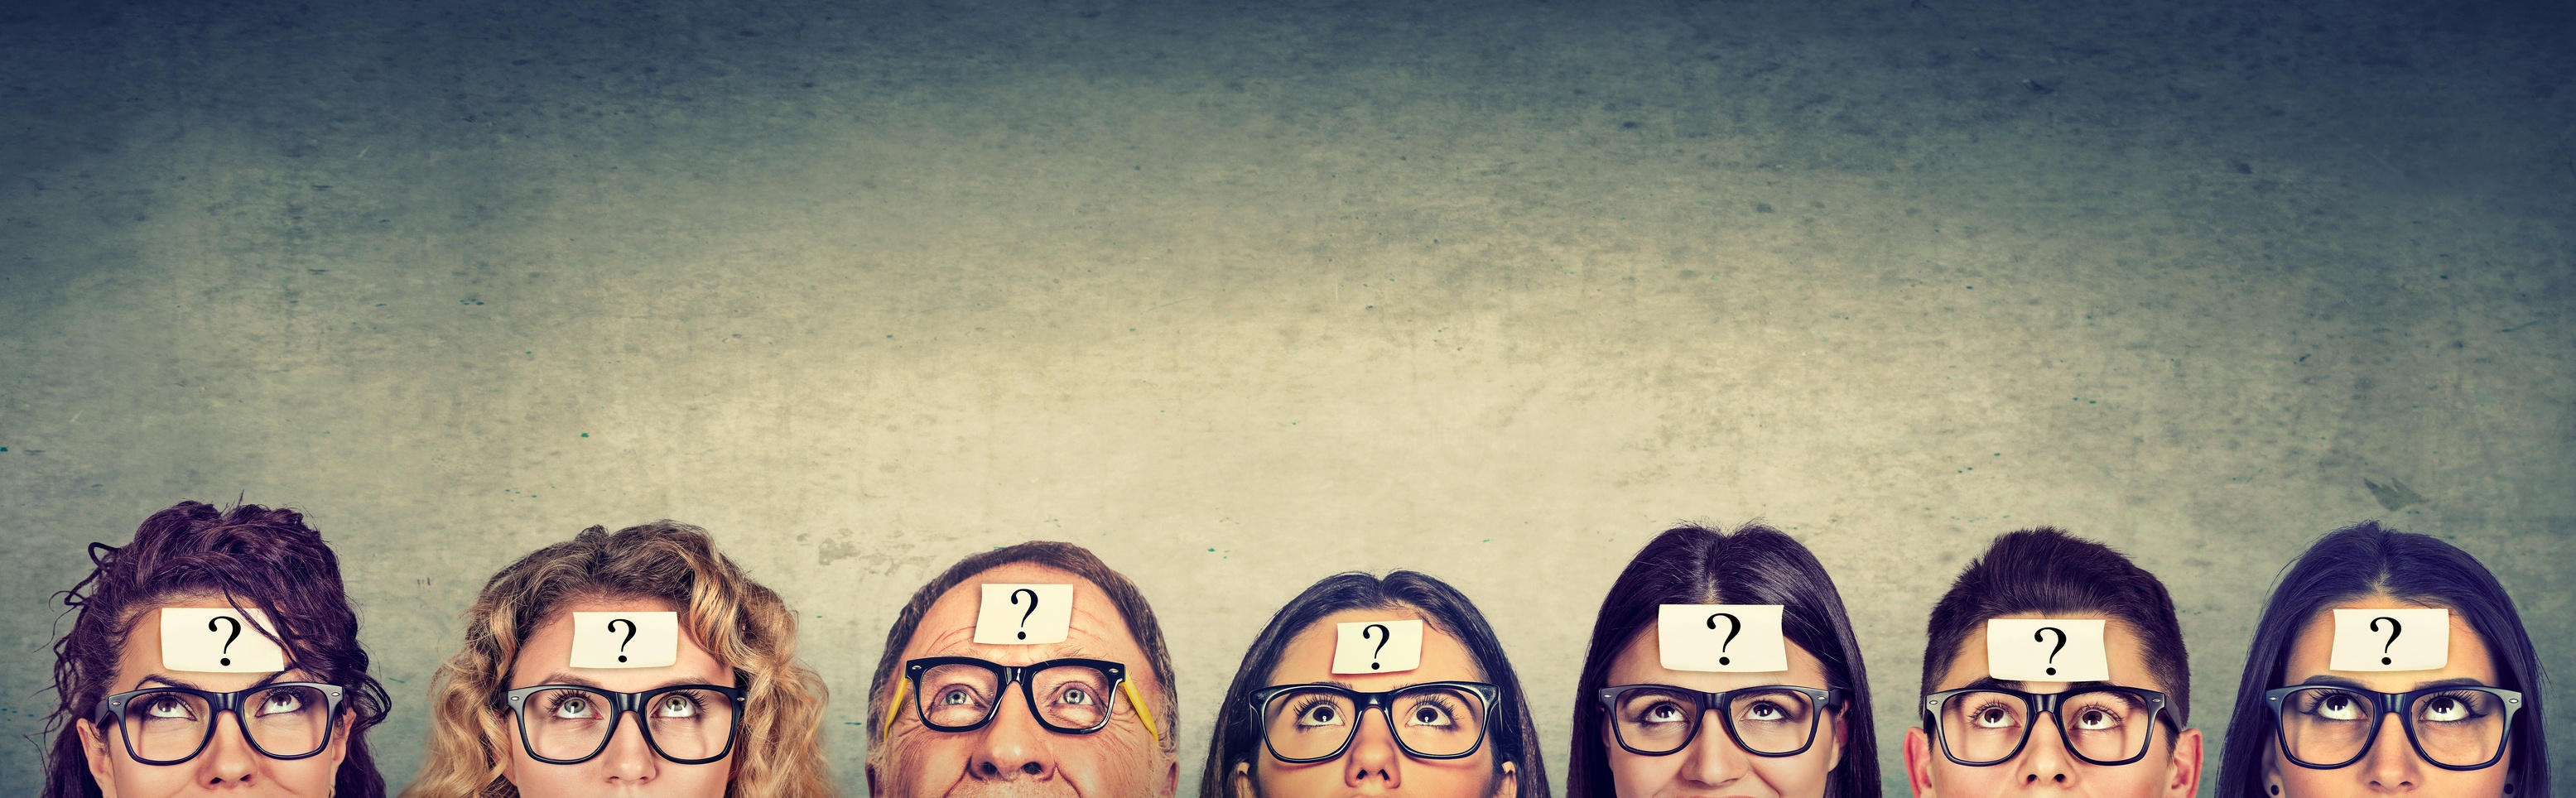 group of people thinking with question marks on foreheads